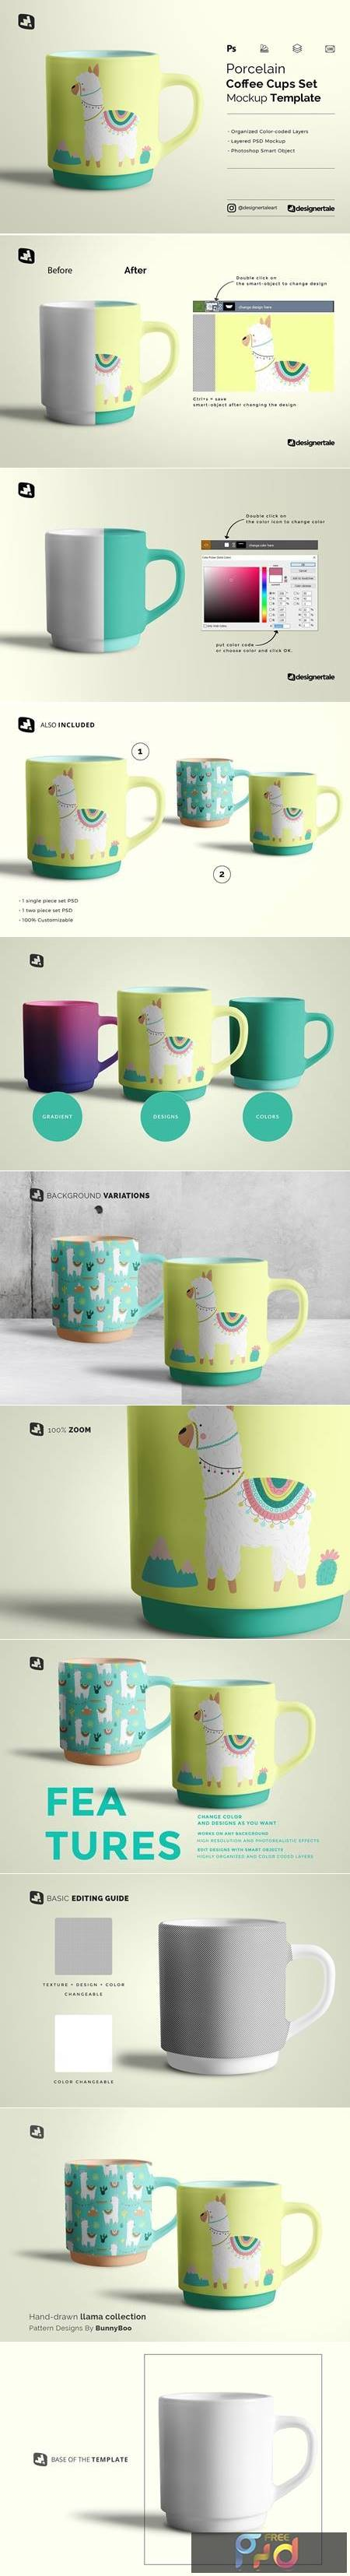 Porcelain Coffee Cups Set Mockup 5188654 1